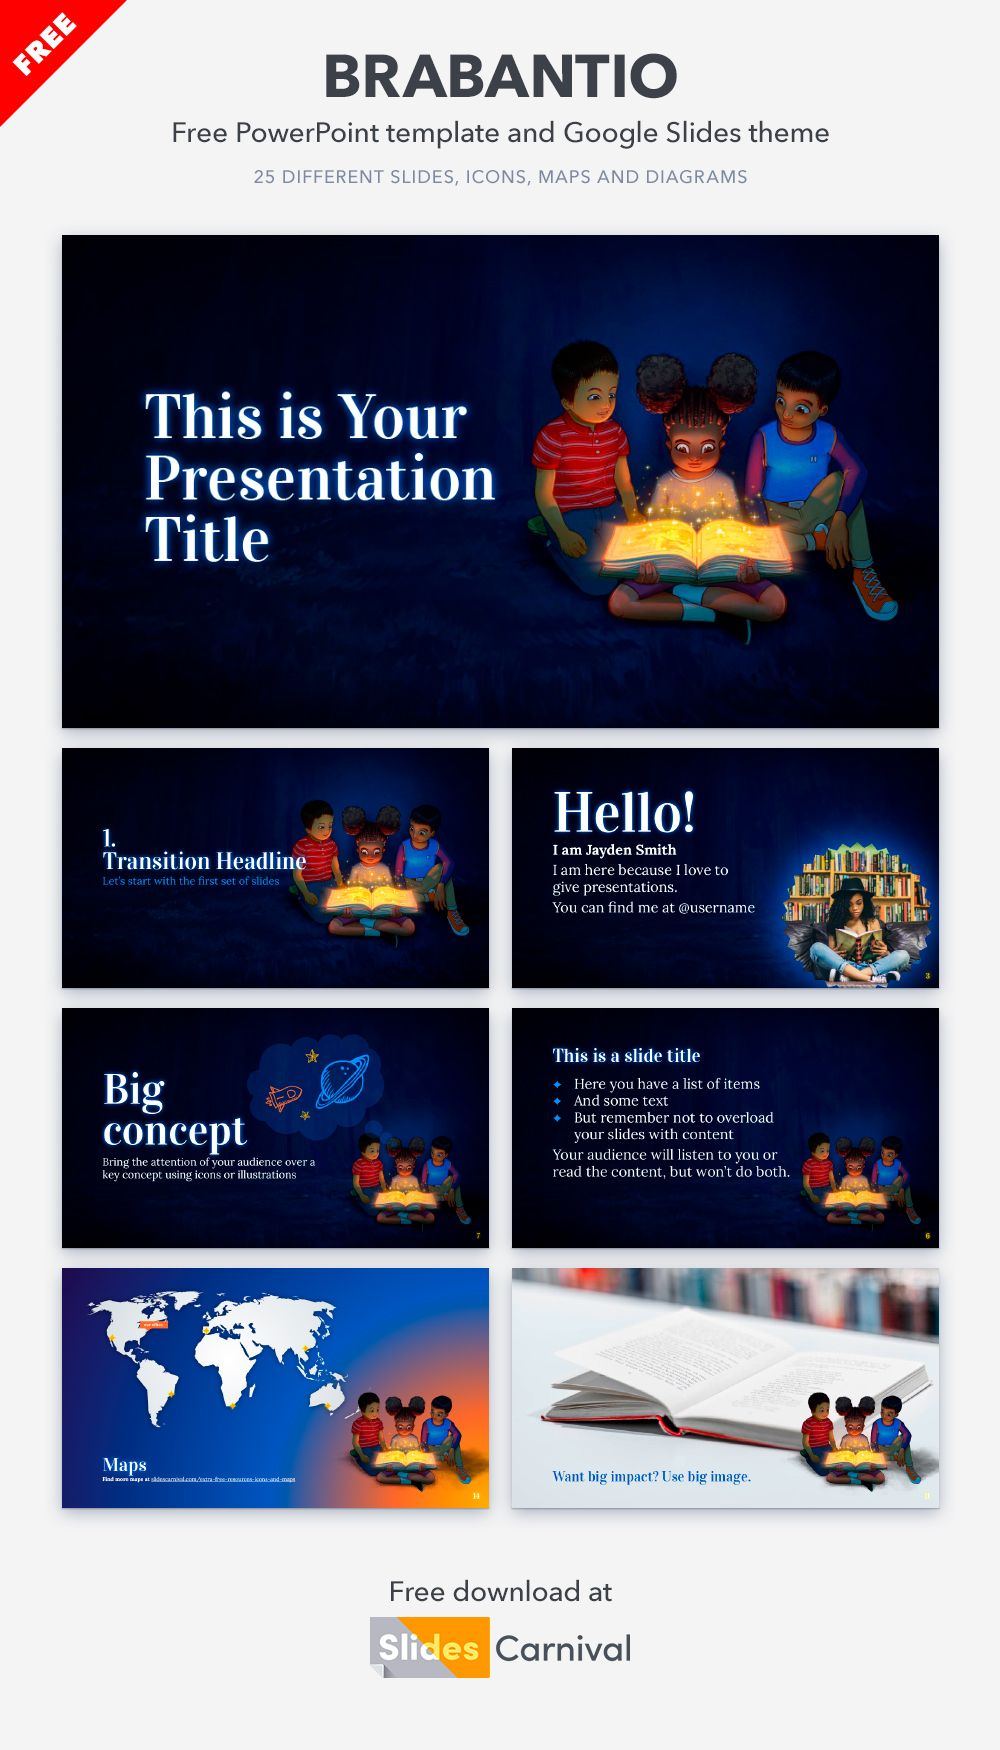 Reading Is Magical Free Powerpoint Template Google Slides Theme Presentation Template Free Powerpoint Templates Google Slides Themes